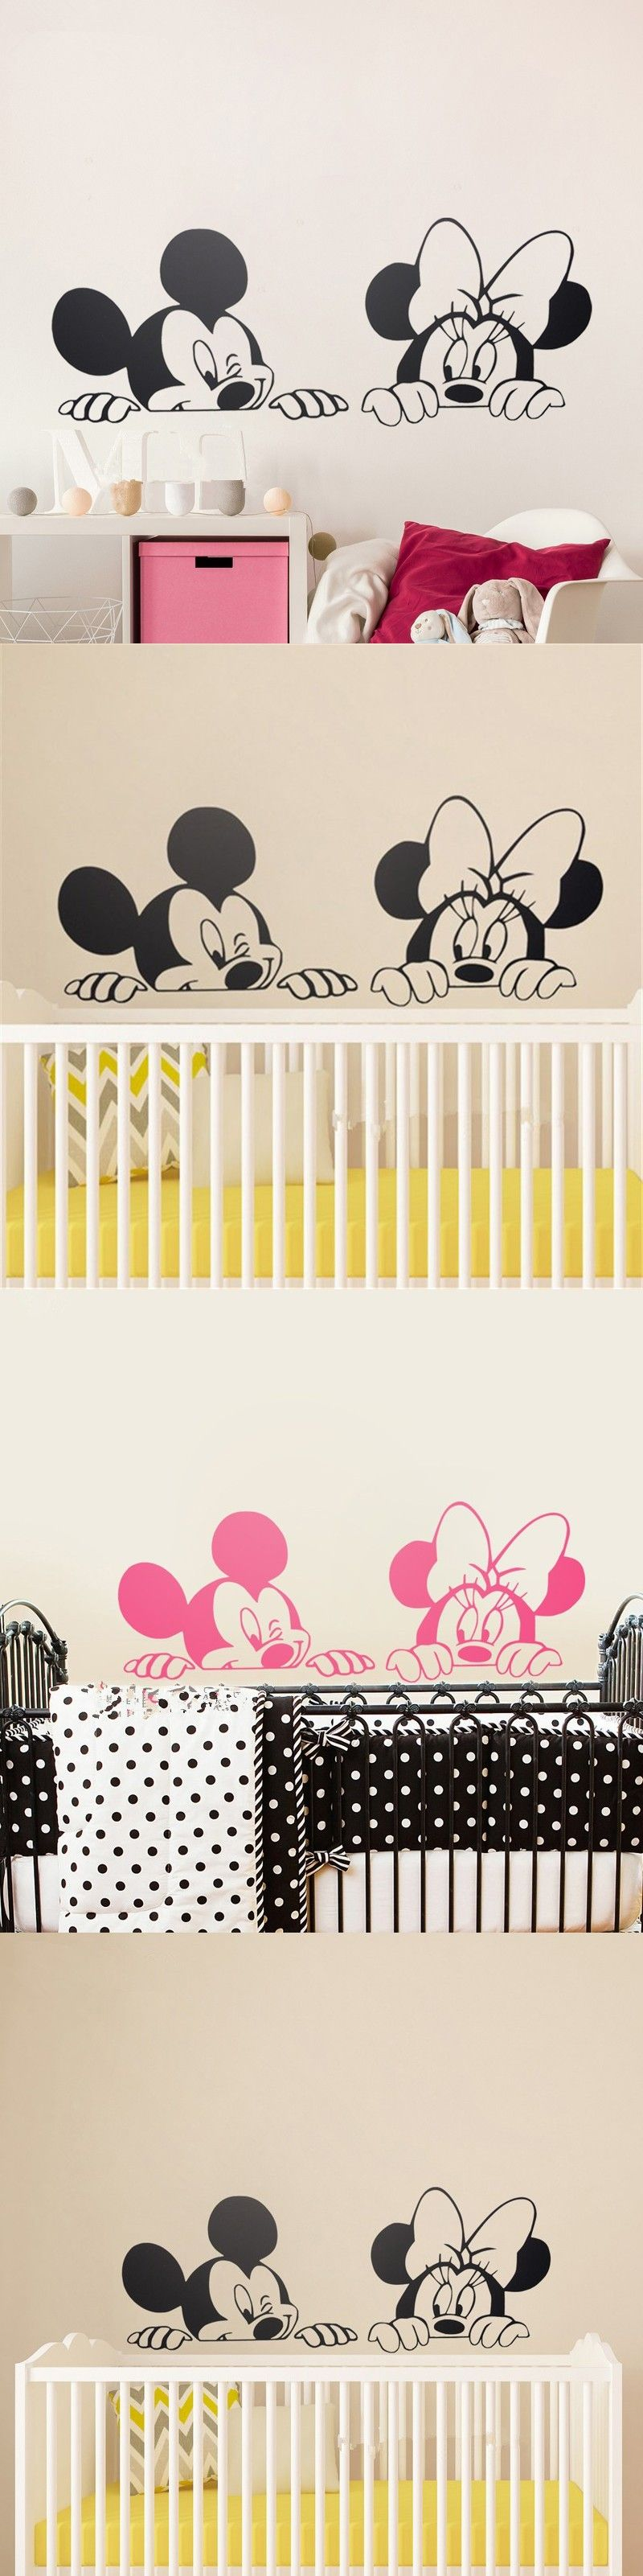 Cartoon Mickey Minnie Mouse Cute Animal Vinyl Wall Stickers Mural Wallpaper  Baby Room Decor Nursery Wall Decal Home Decor Part 80